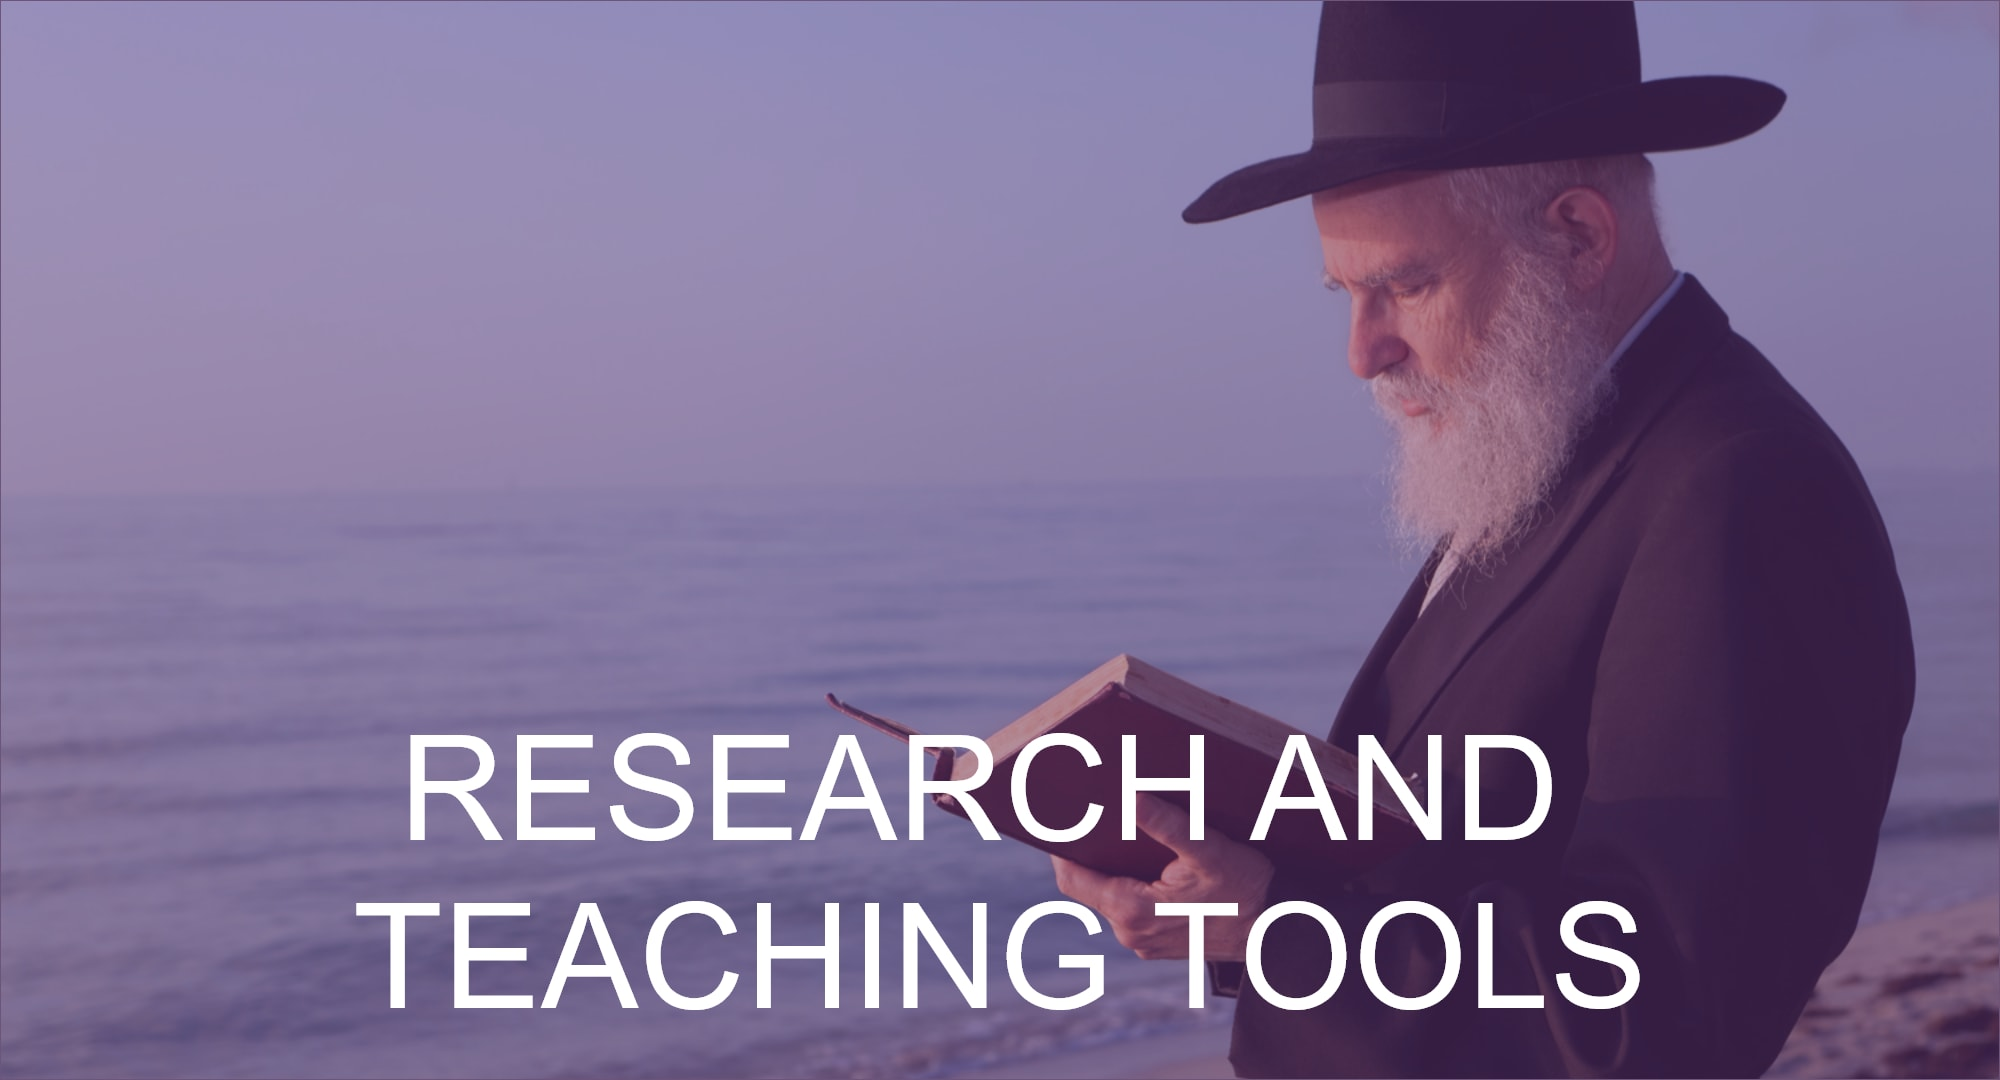 Click here to view the research and learning tools